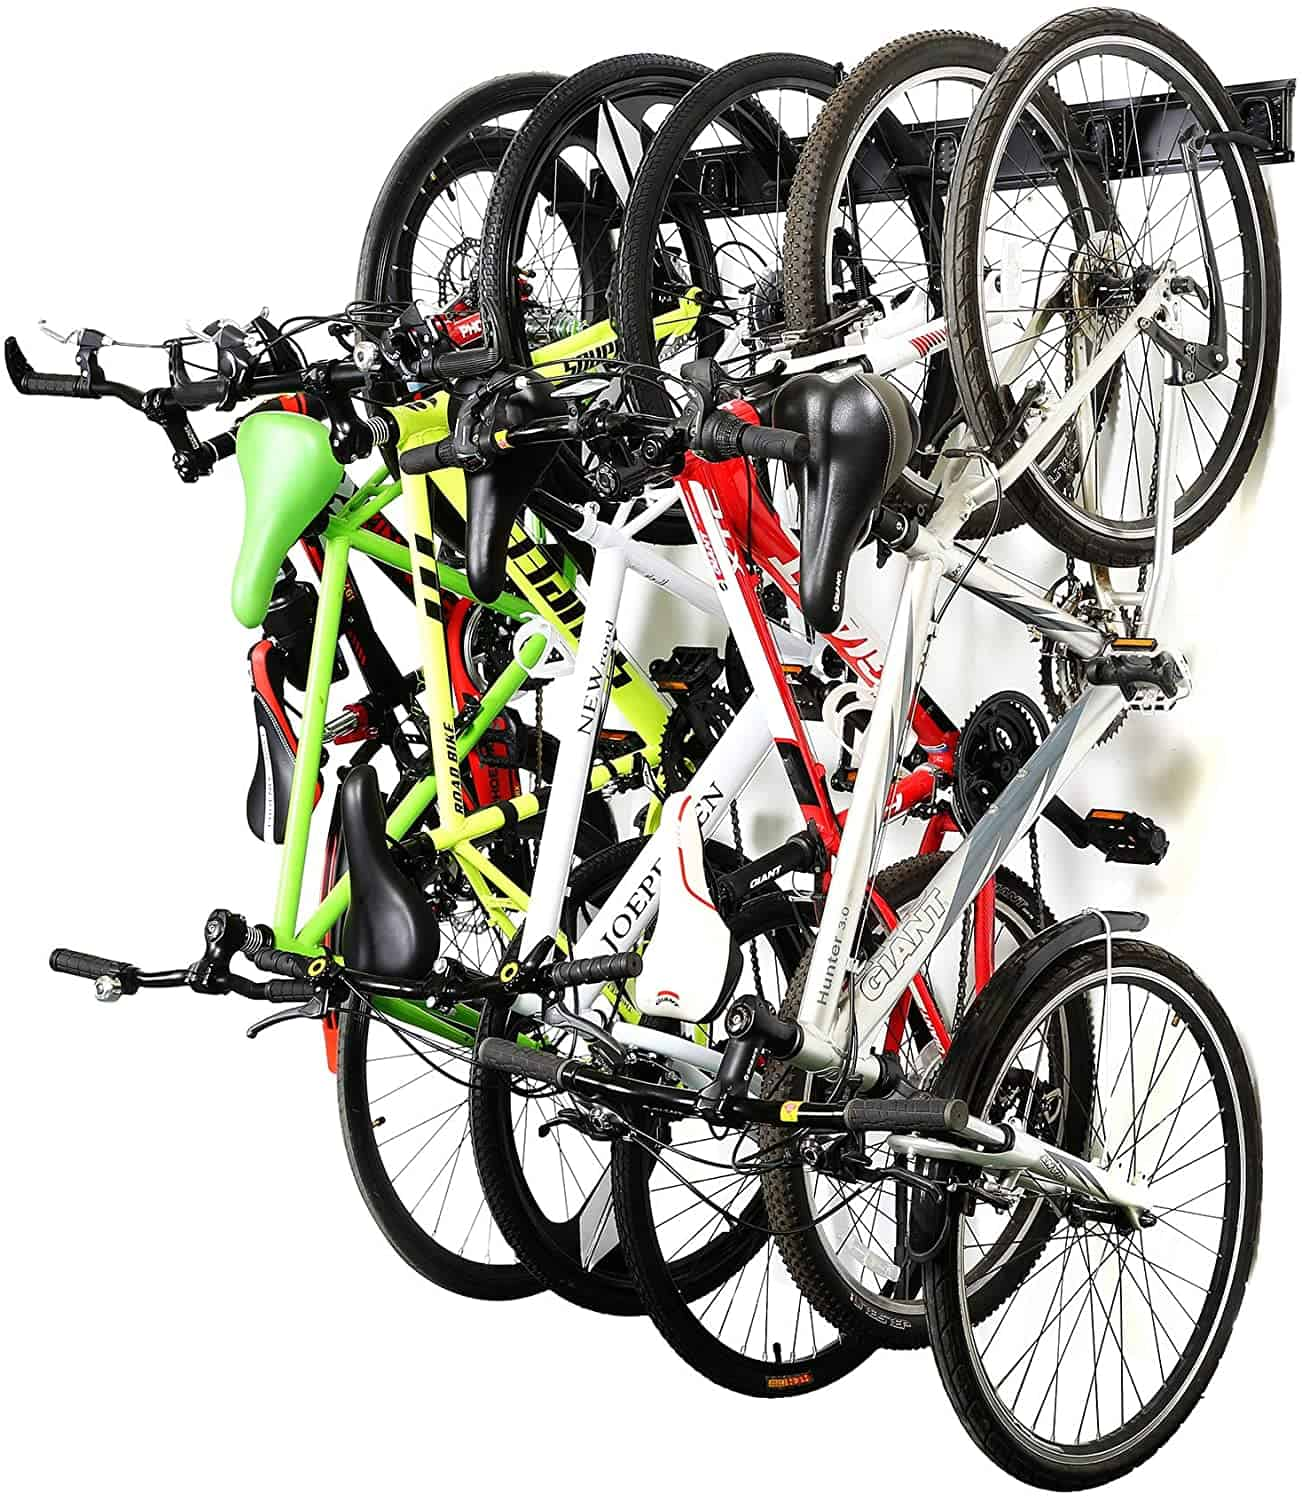 Best Monkey Bar Bike Hanger: Monkey Bars Bike Storage Rack